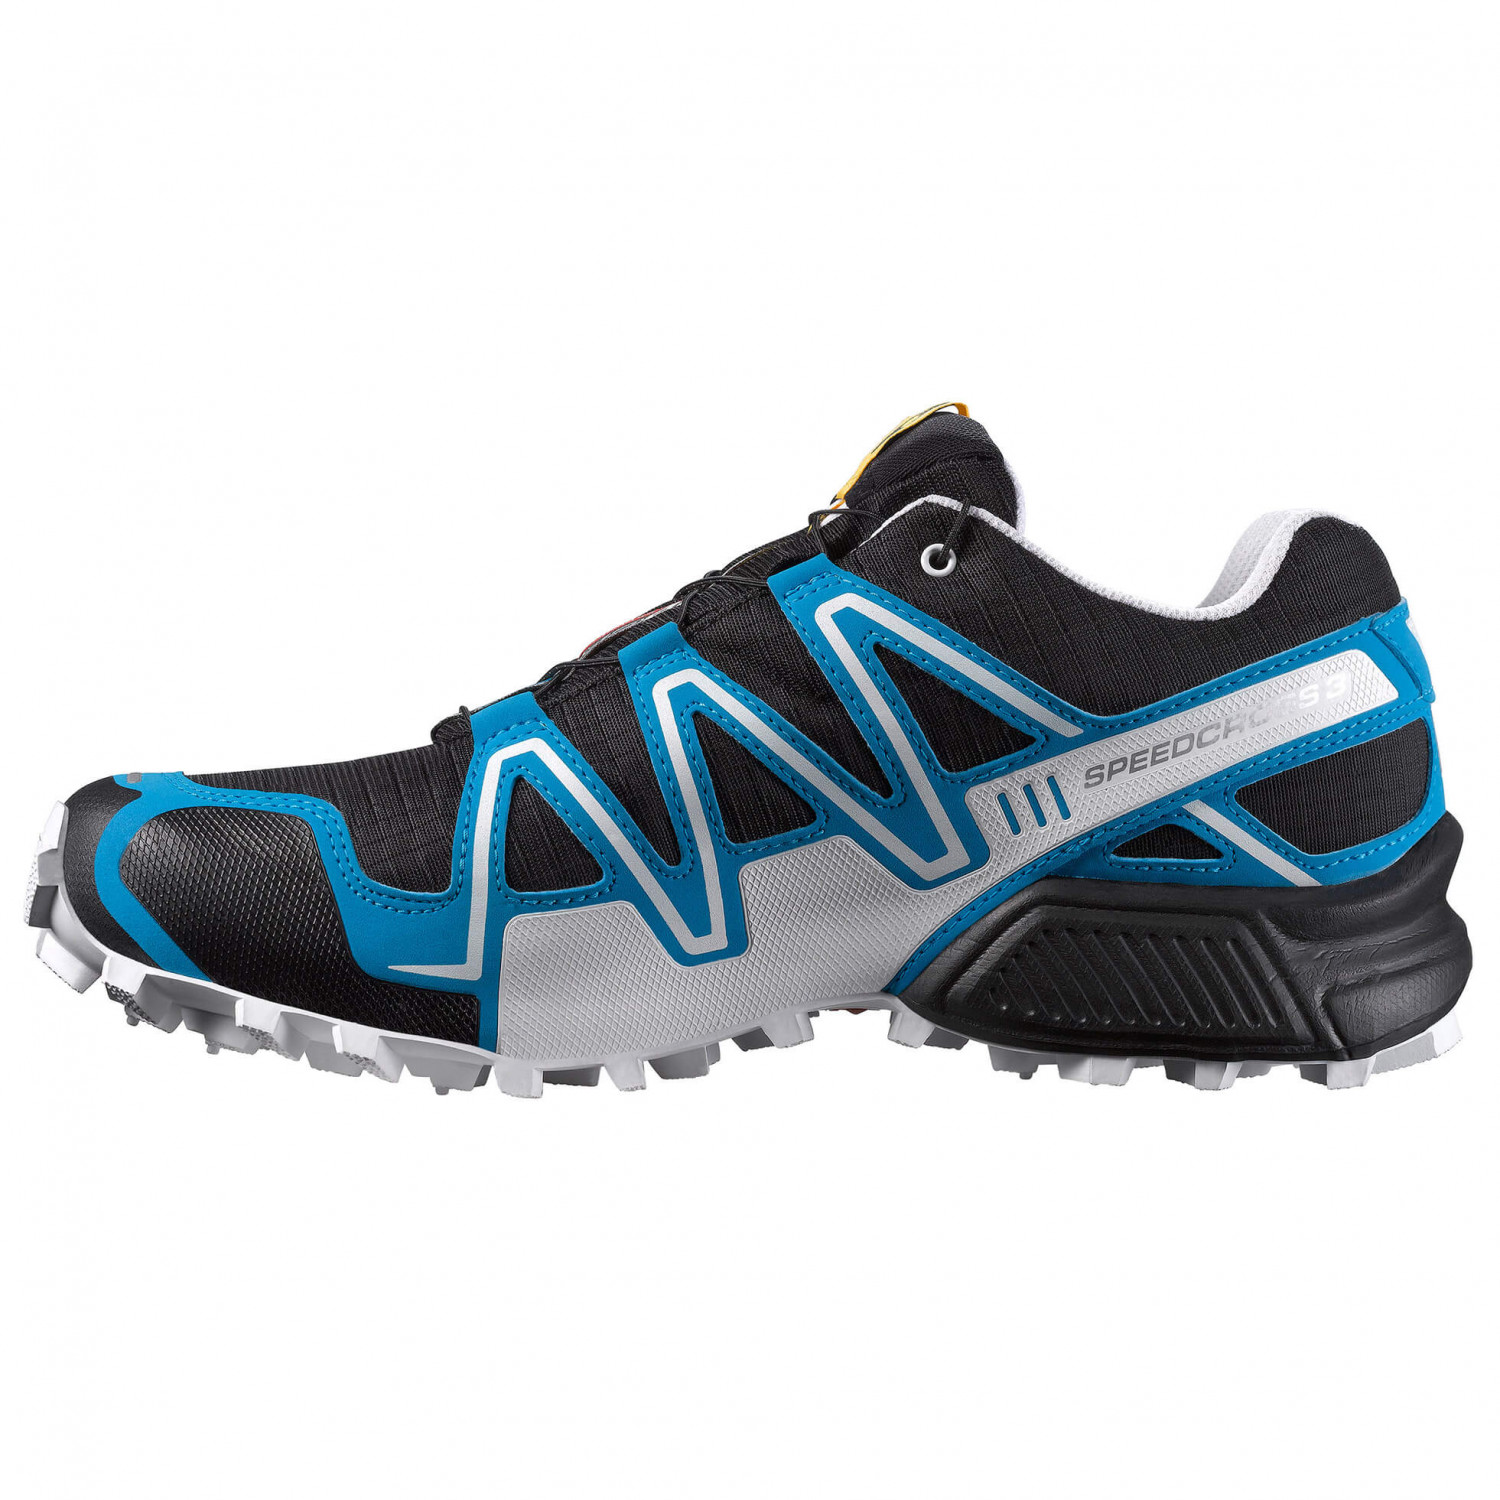 salomon speedcross 3 gtx trailrunningschuhe online kaufen. Black Bedroom Furniture Sets. Home Design Ideas